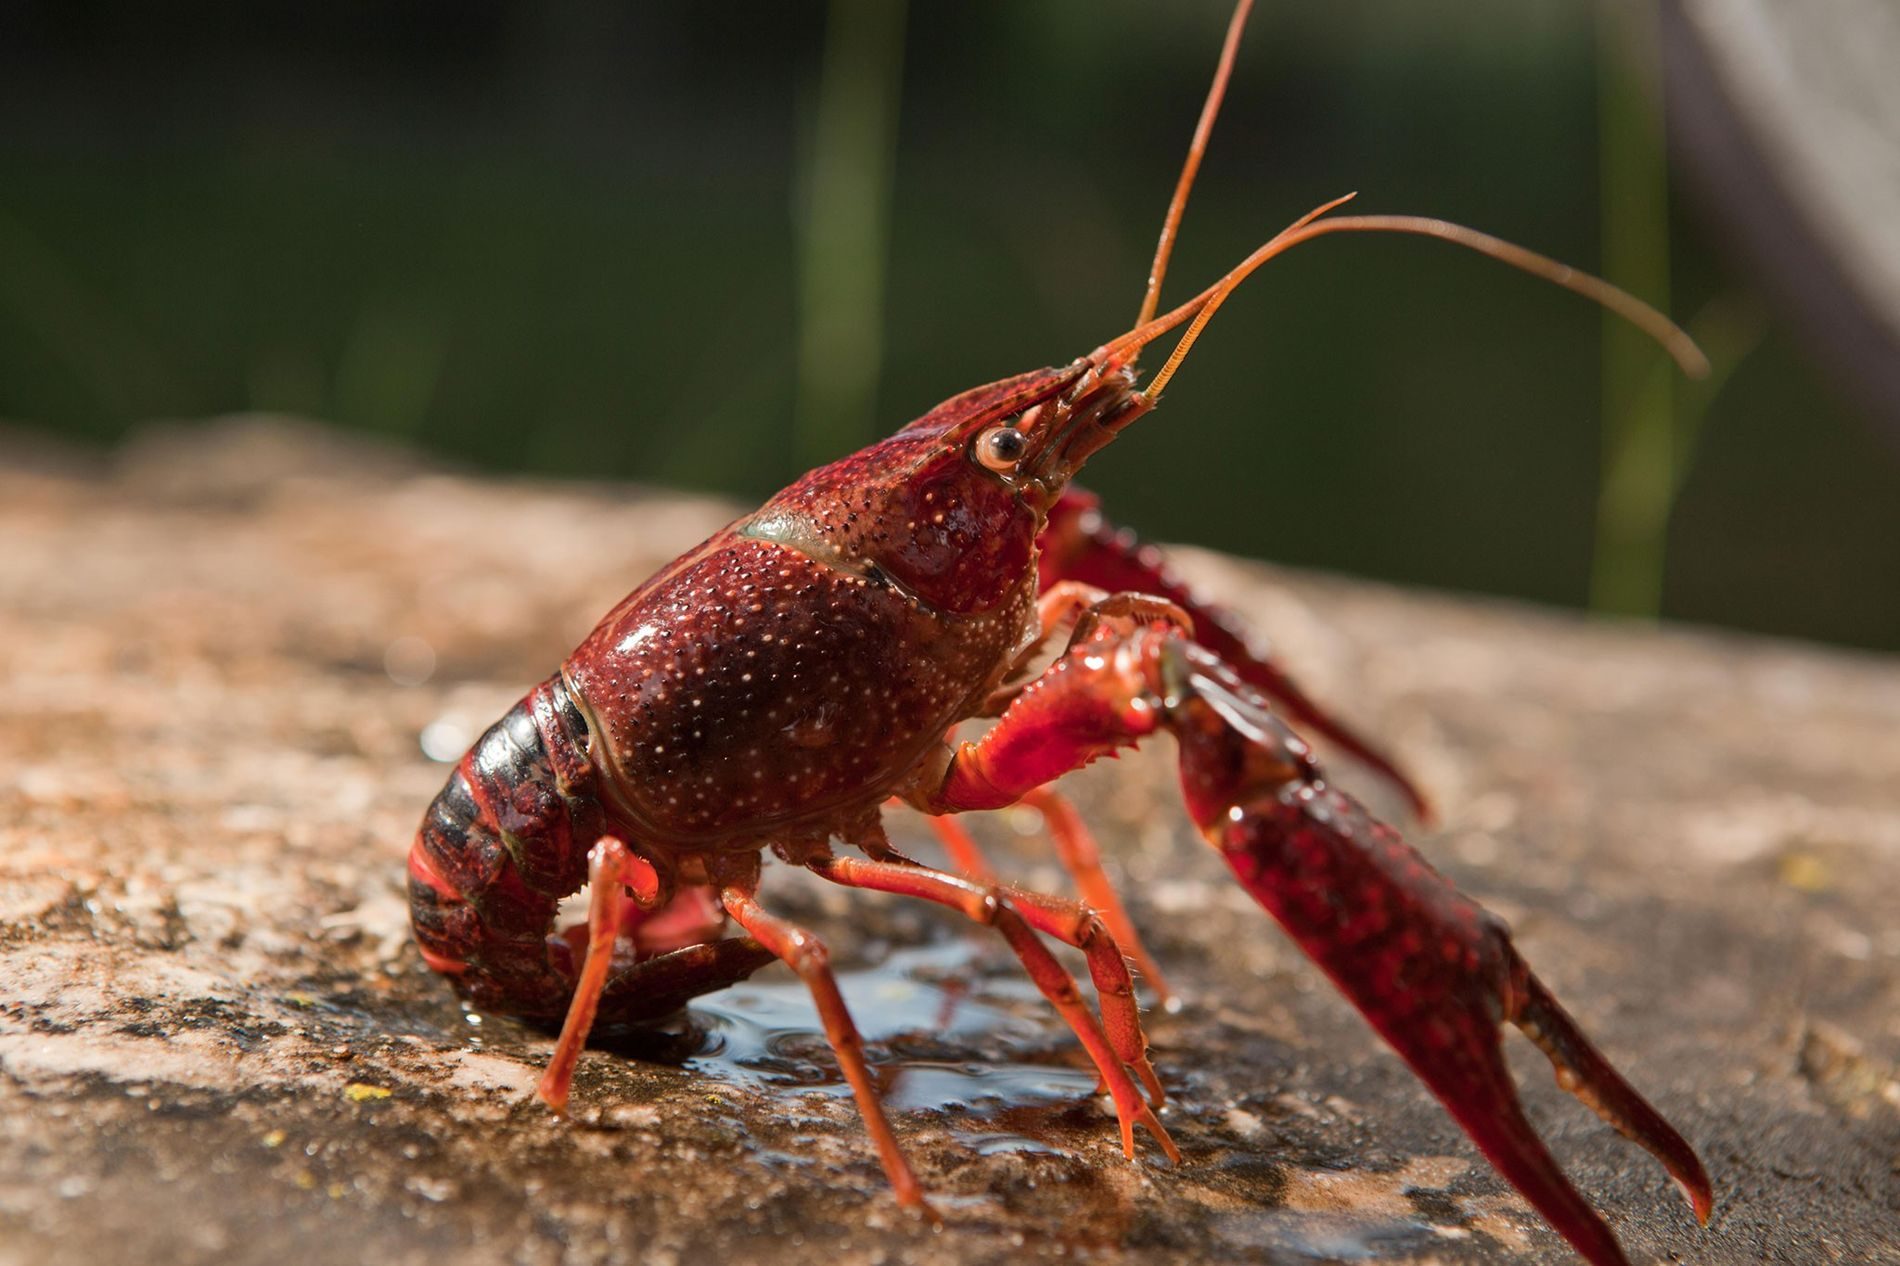 The prolific red swamp crayfish (Procambarus clarkii), native to the Southeastern U.S., has invaded freshwater ecosystems globally—including the streams of California's Santa Monica Mountains.